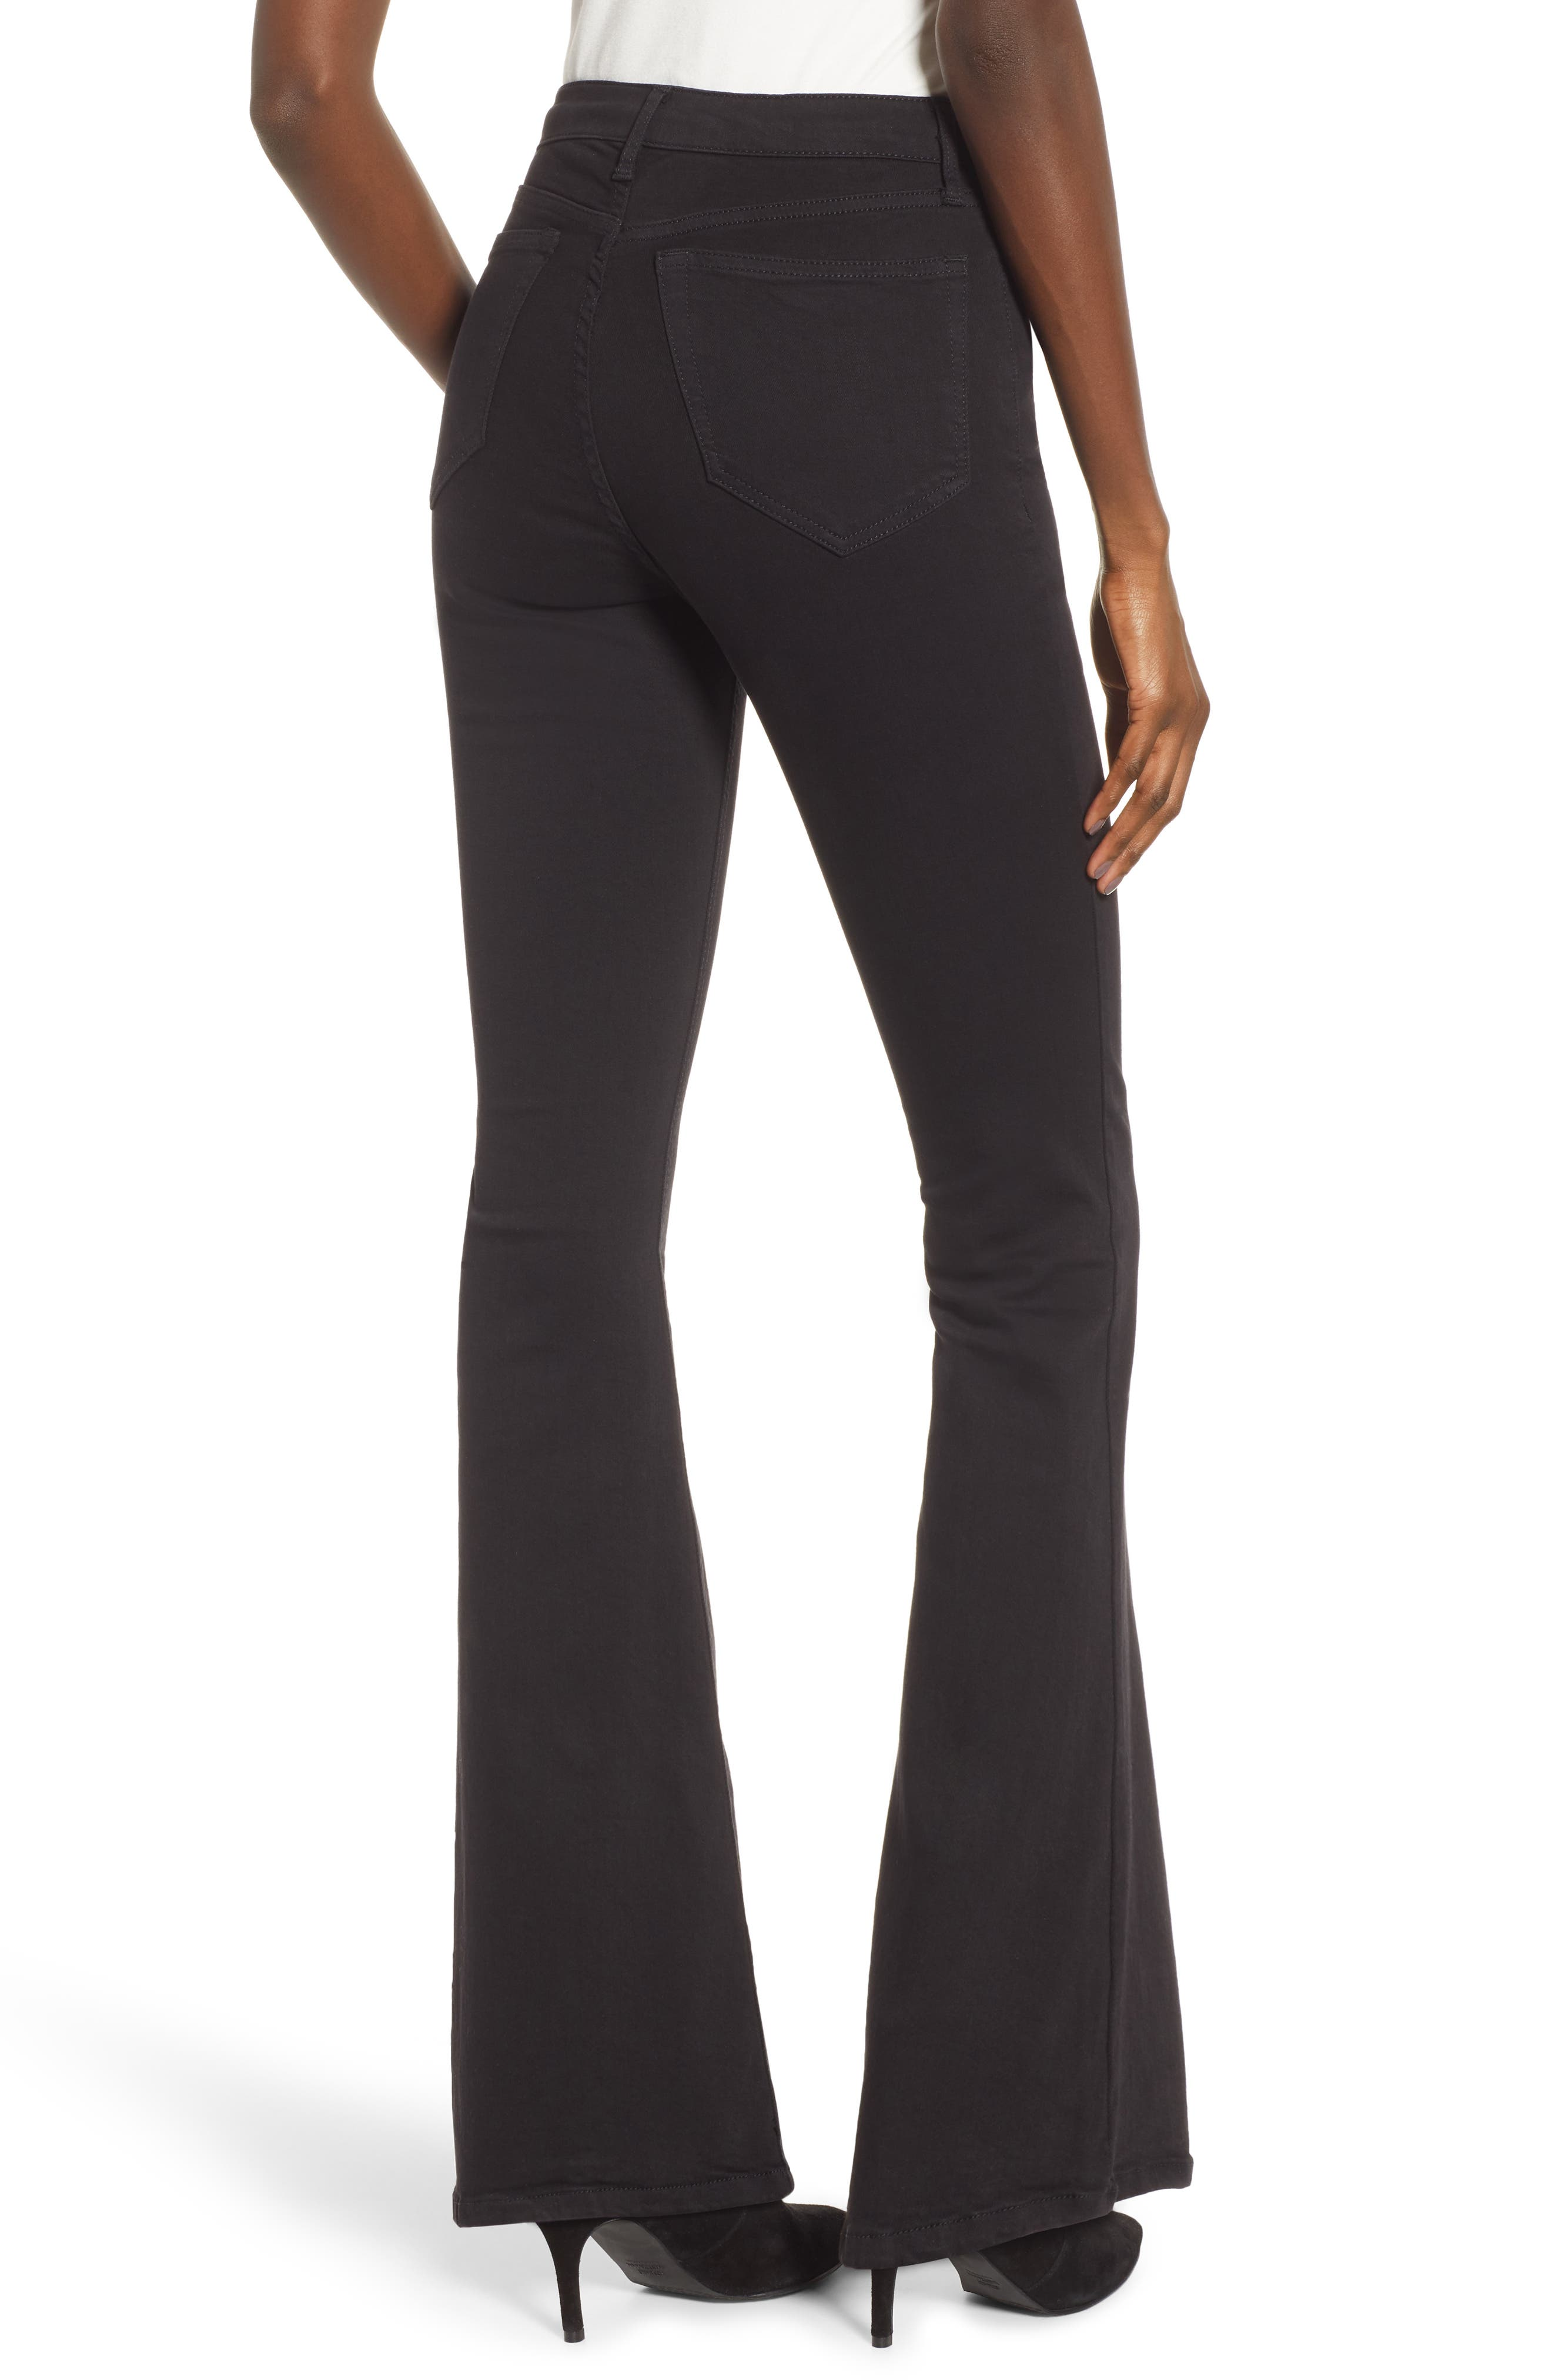 TOPSHOP, Jamie Flare Leg Jeans, Alternate thumbnail 2, color, OPEN BLACK